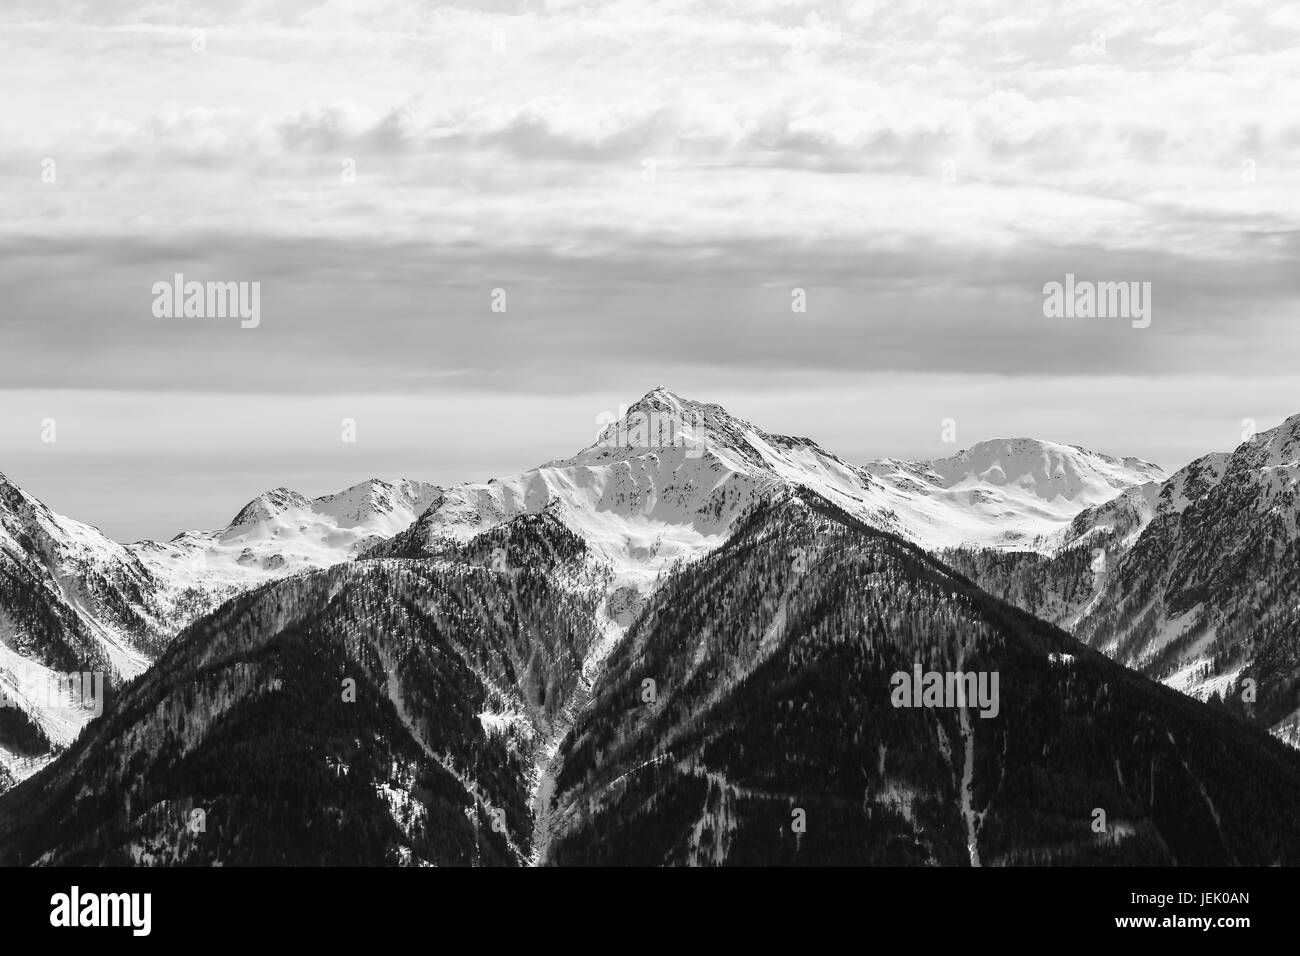 Ilmspitze in Monochrome - Stock Image